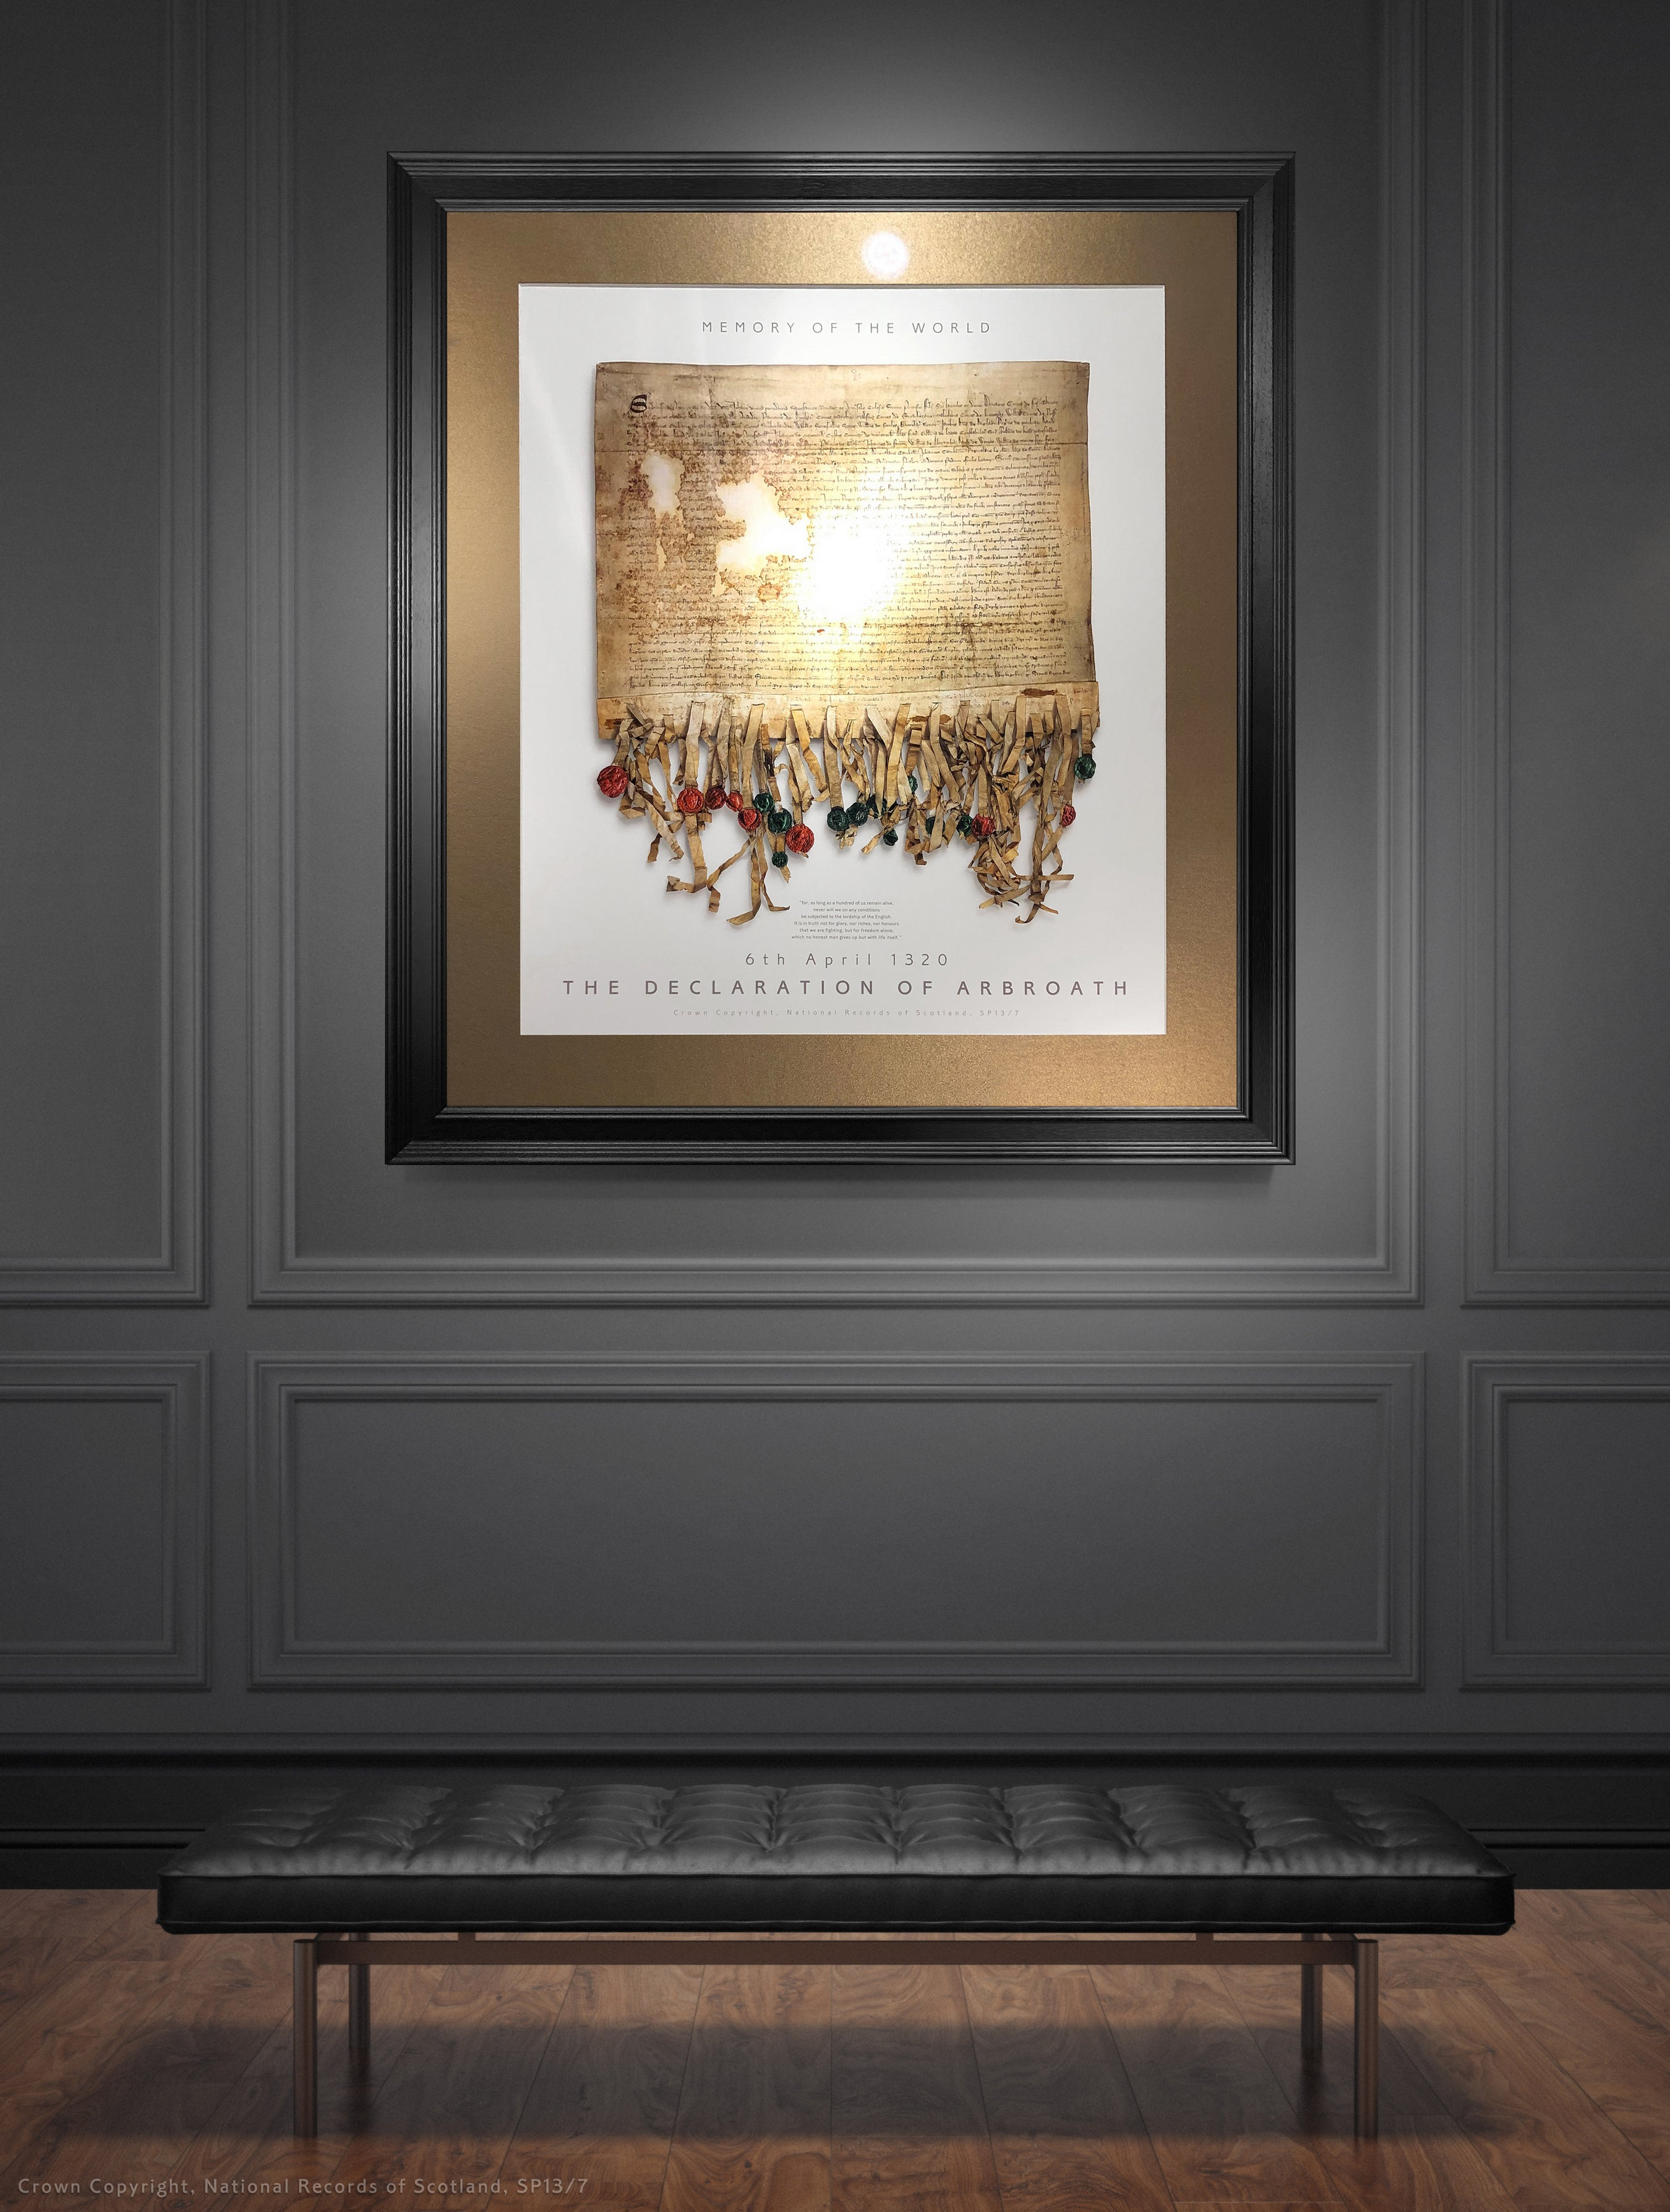 The Declaration of Arbroath Gold Metallic Print Editions - Pearl by Steven Patrick Sim